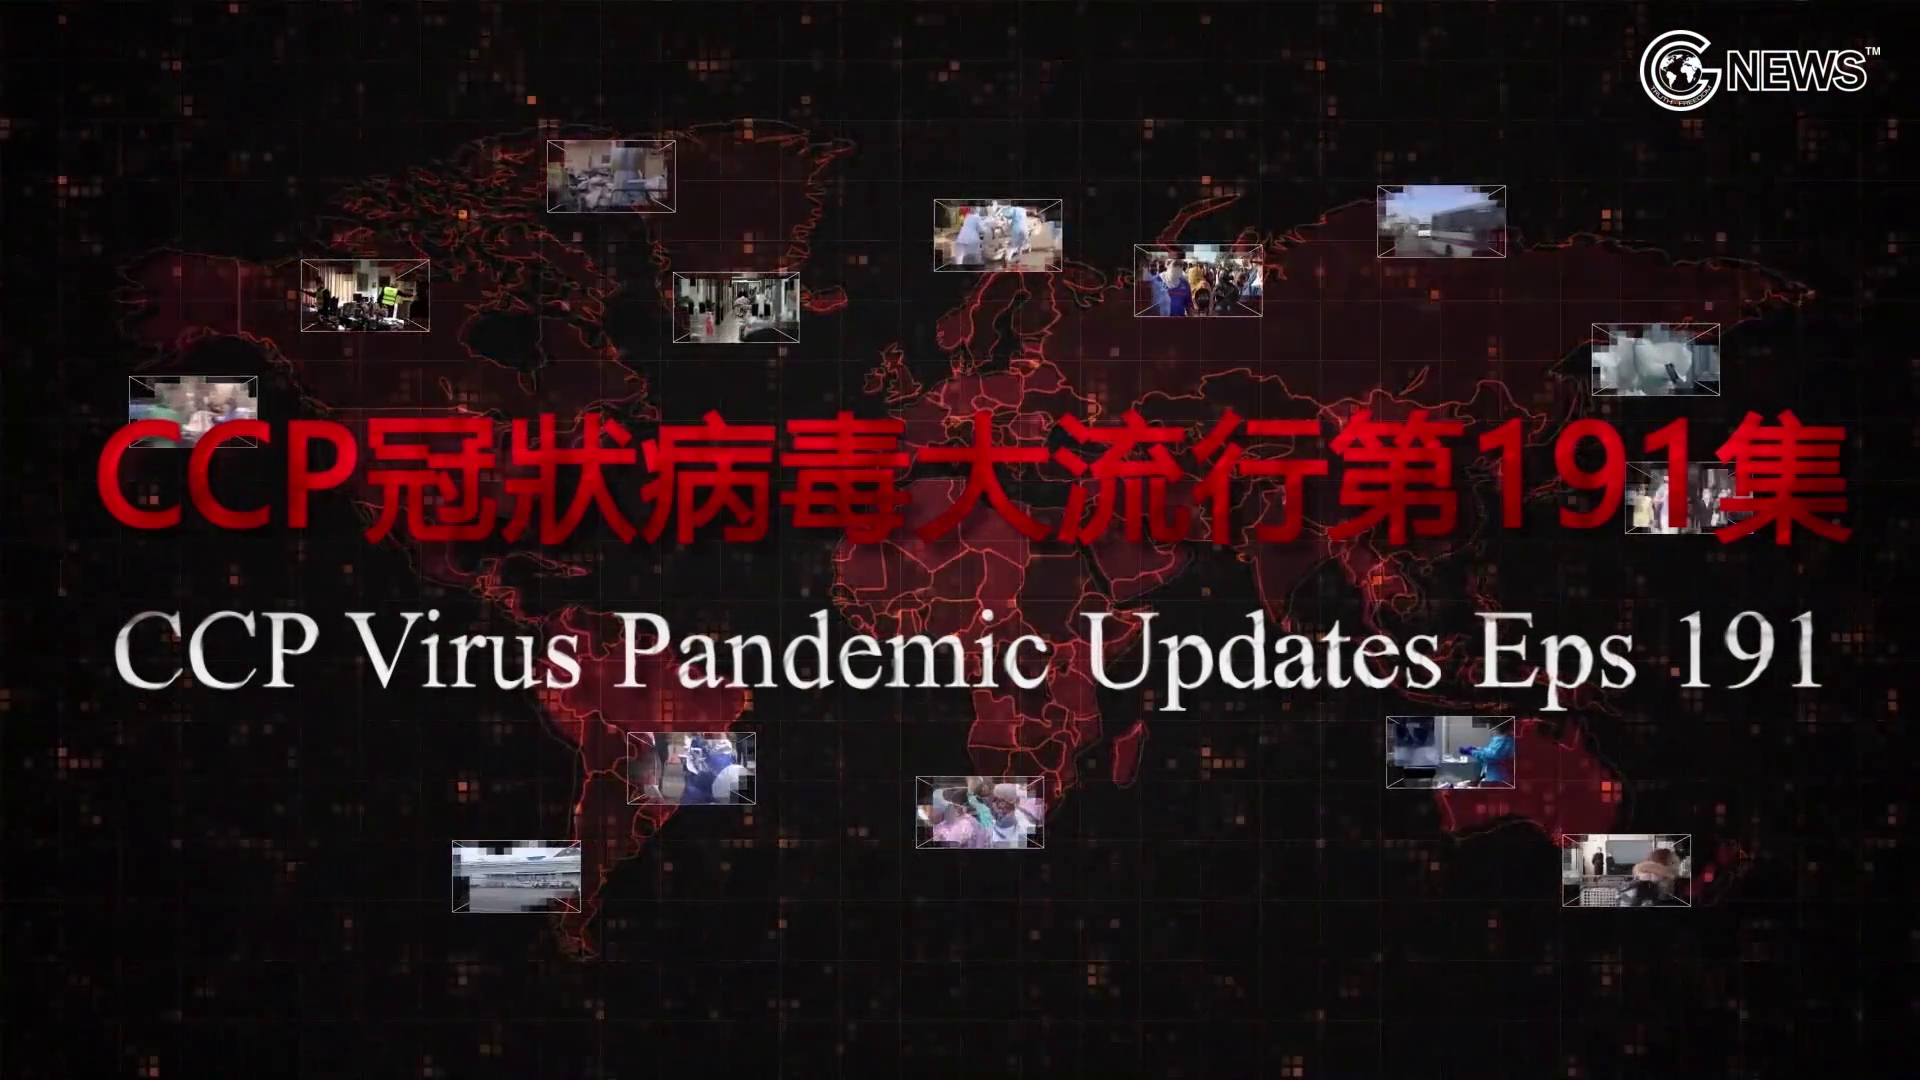 CCP-Virus Pandemic Daily Updates EP191(Aug 3, 2020)